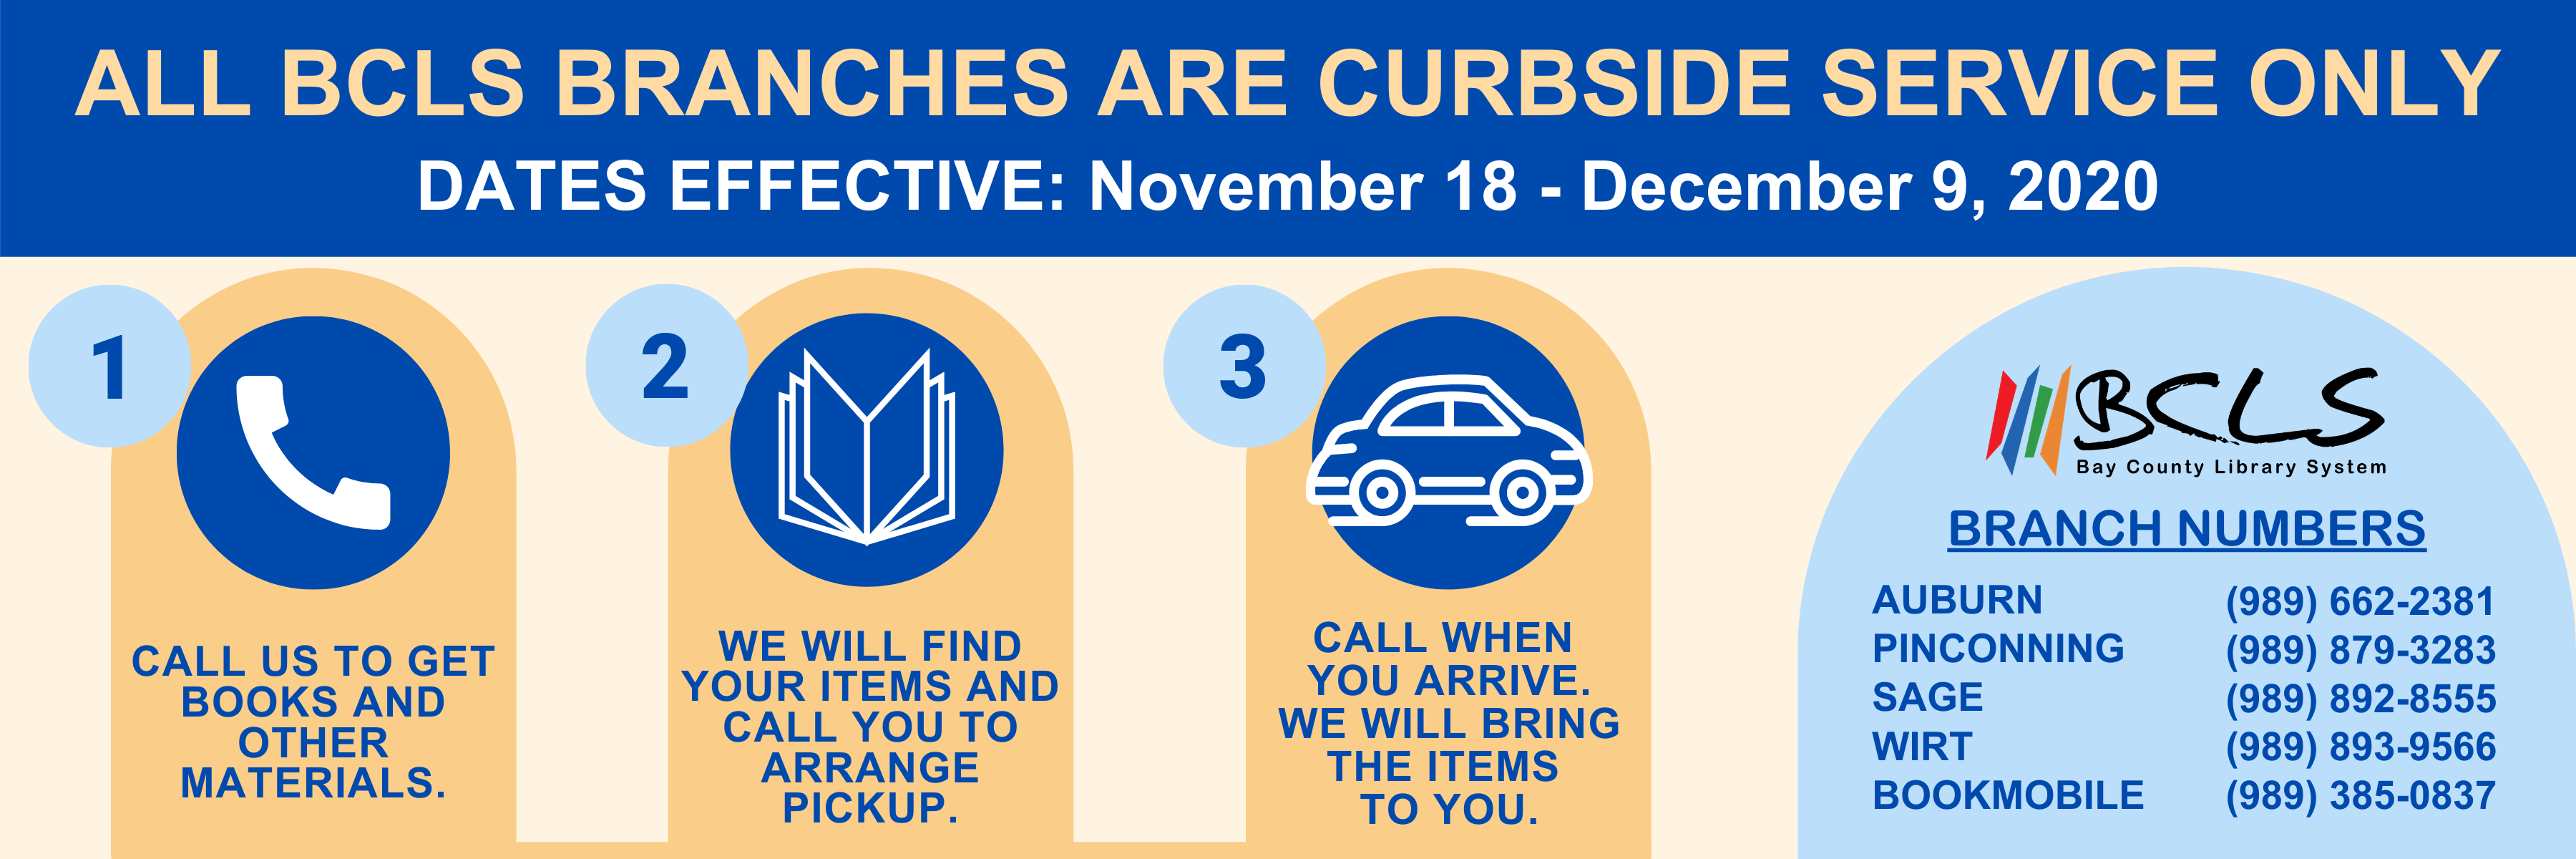 Curbside service only Nov 18-Dec 9, 2020